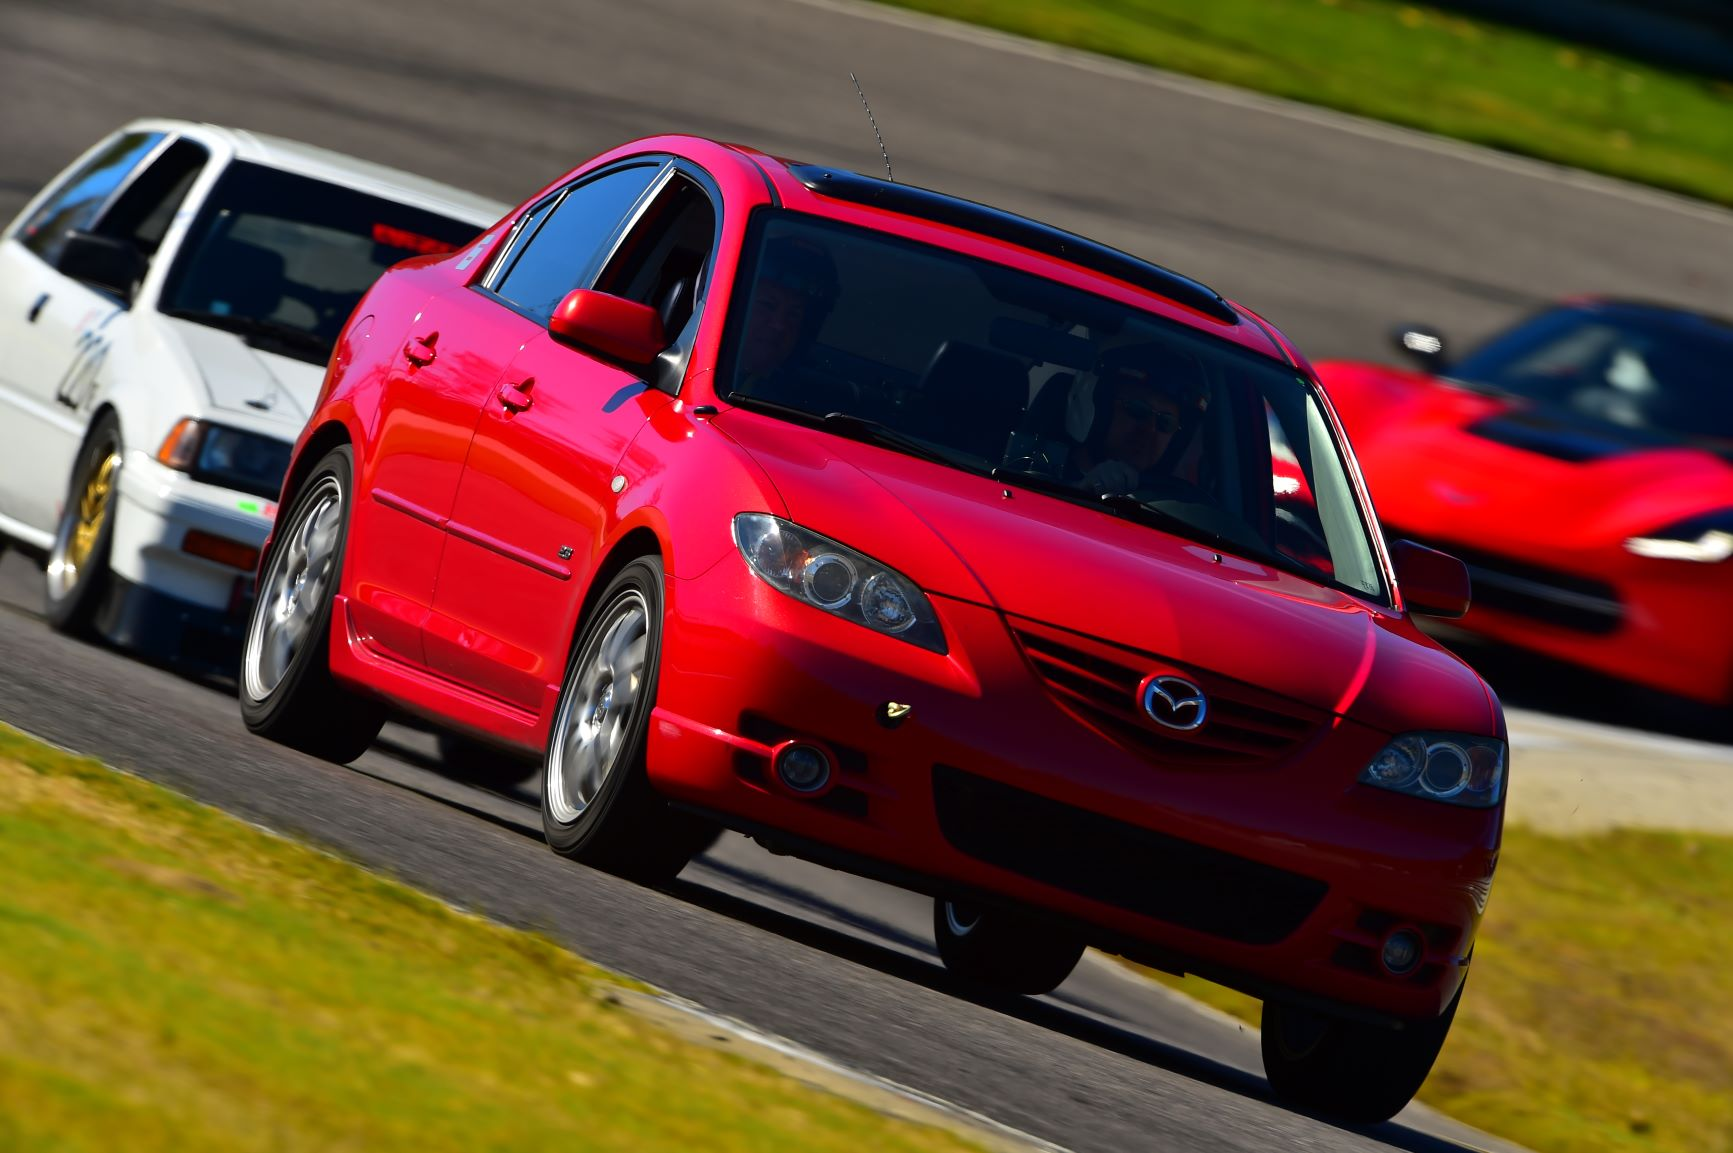 Jimmy's 2005 Mazda 3 S sedan on track